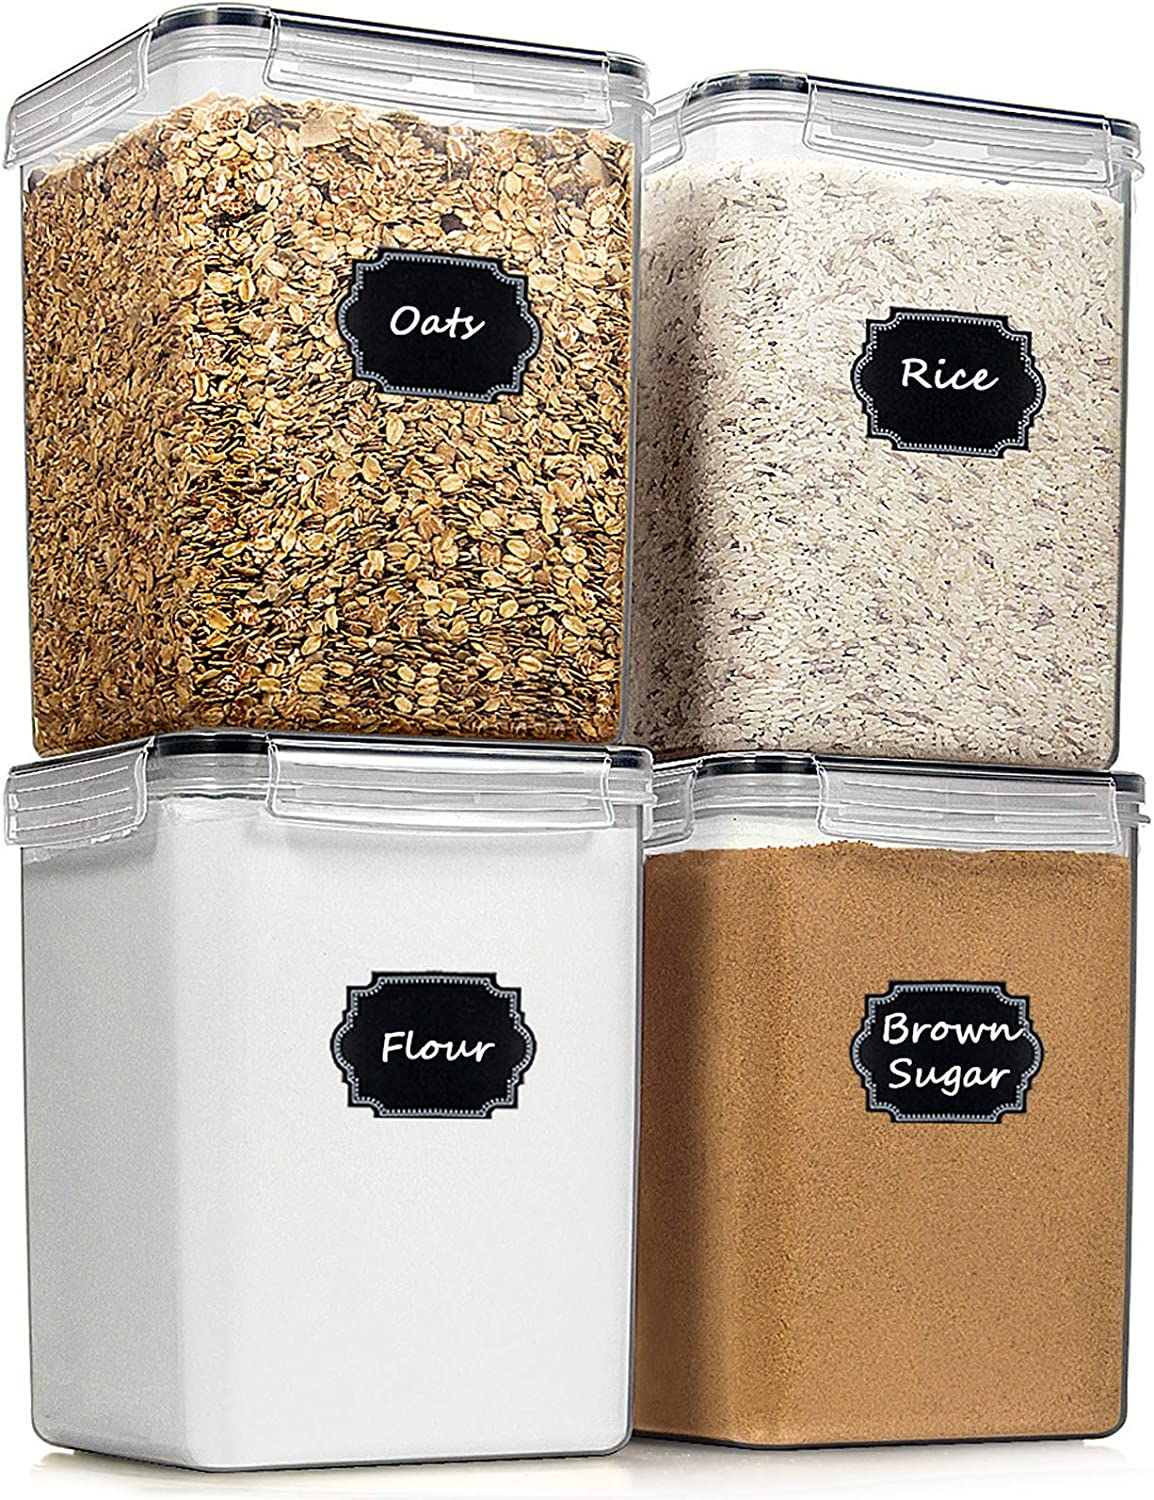 Large Food Storage Containers Cereal Container, Blingco Airtight Tall Dry Food Storage Containers Set of 4 (5.2L /175oz) for Flour, Sugar, Baking Supplies, Kitchen & Pantry Storage Container with Lids